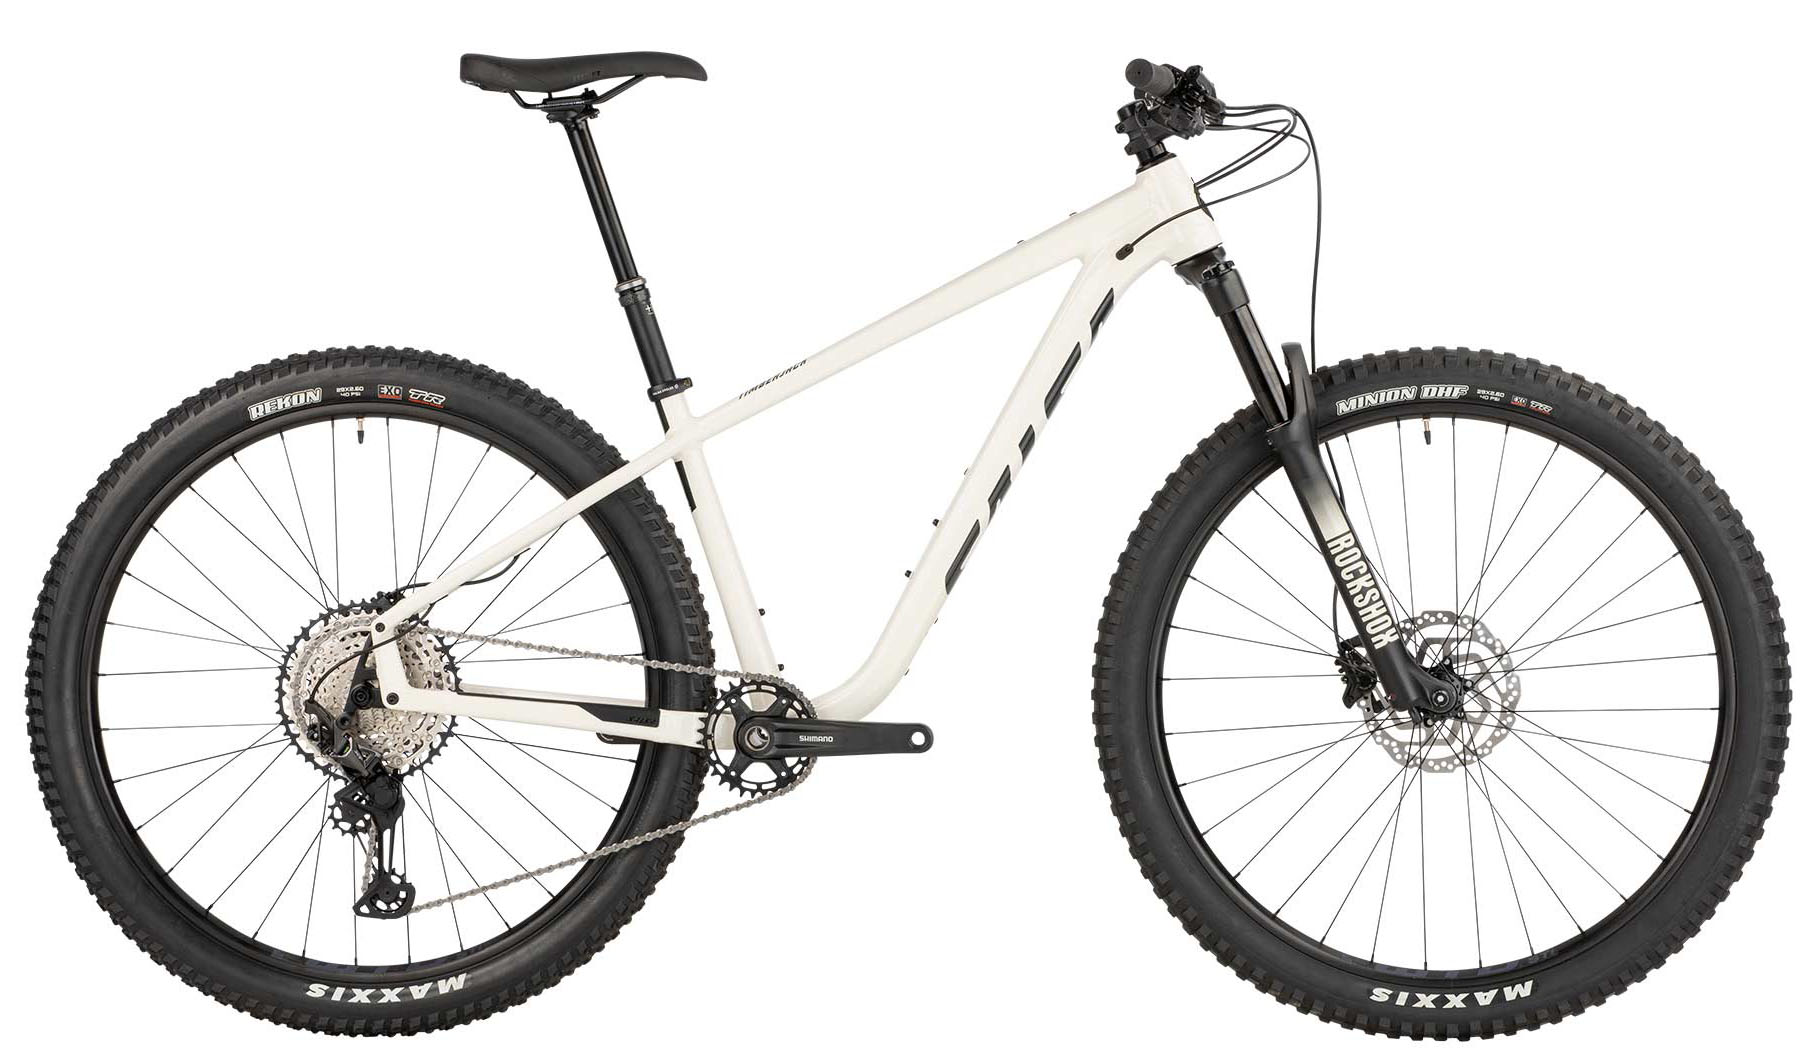 Salsa Timberjack XT 29 mountain bike